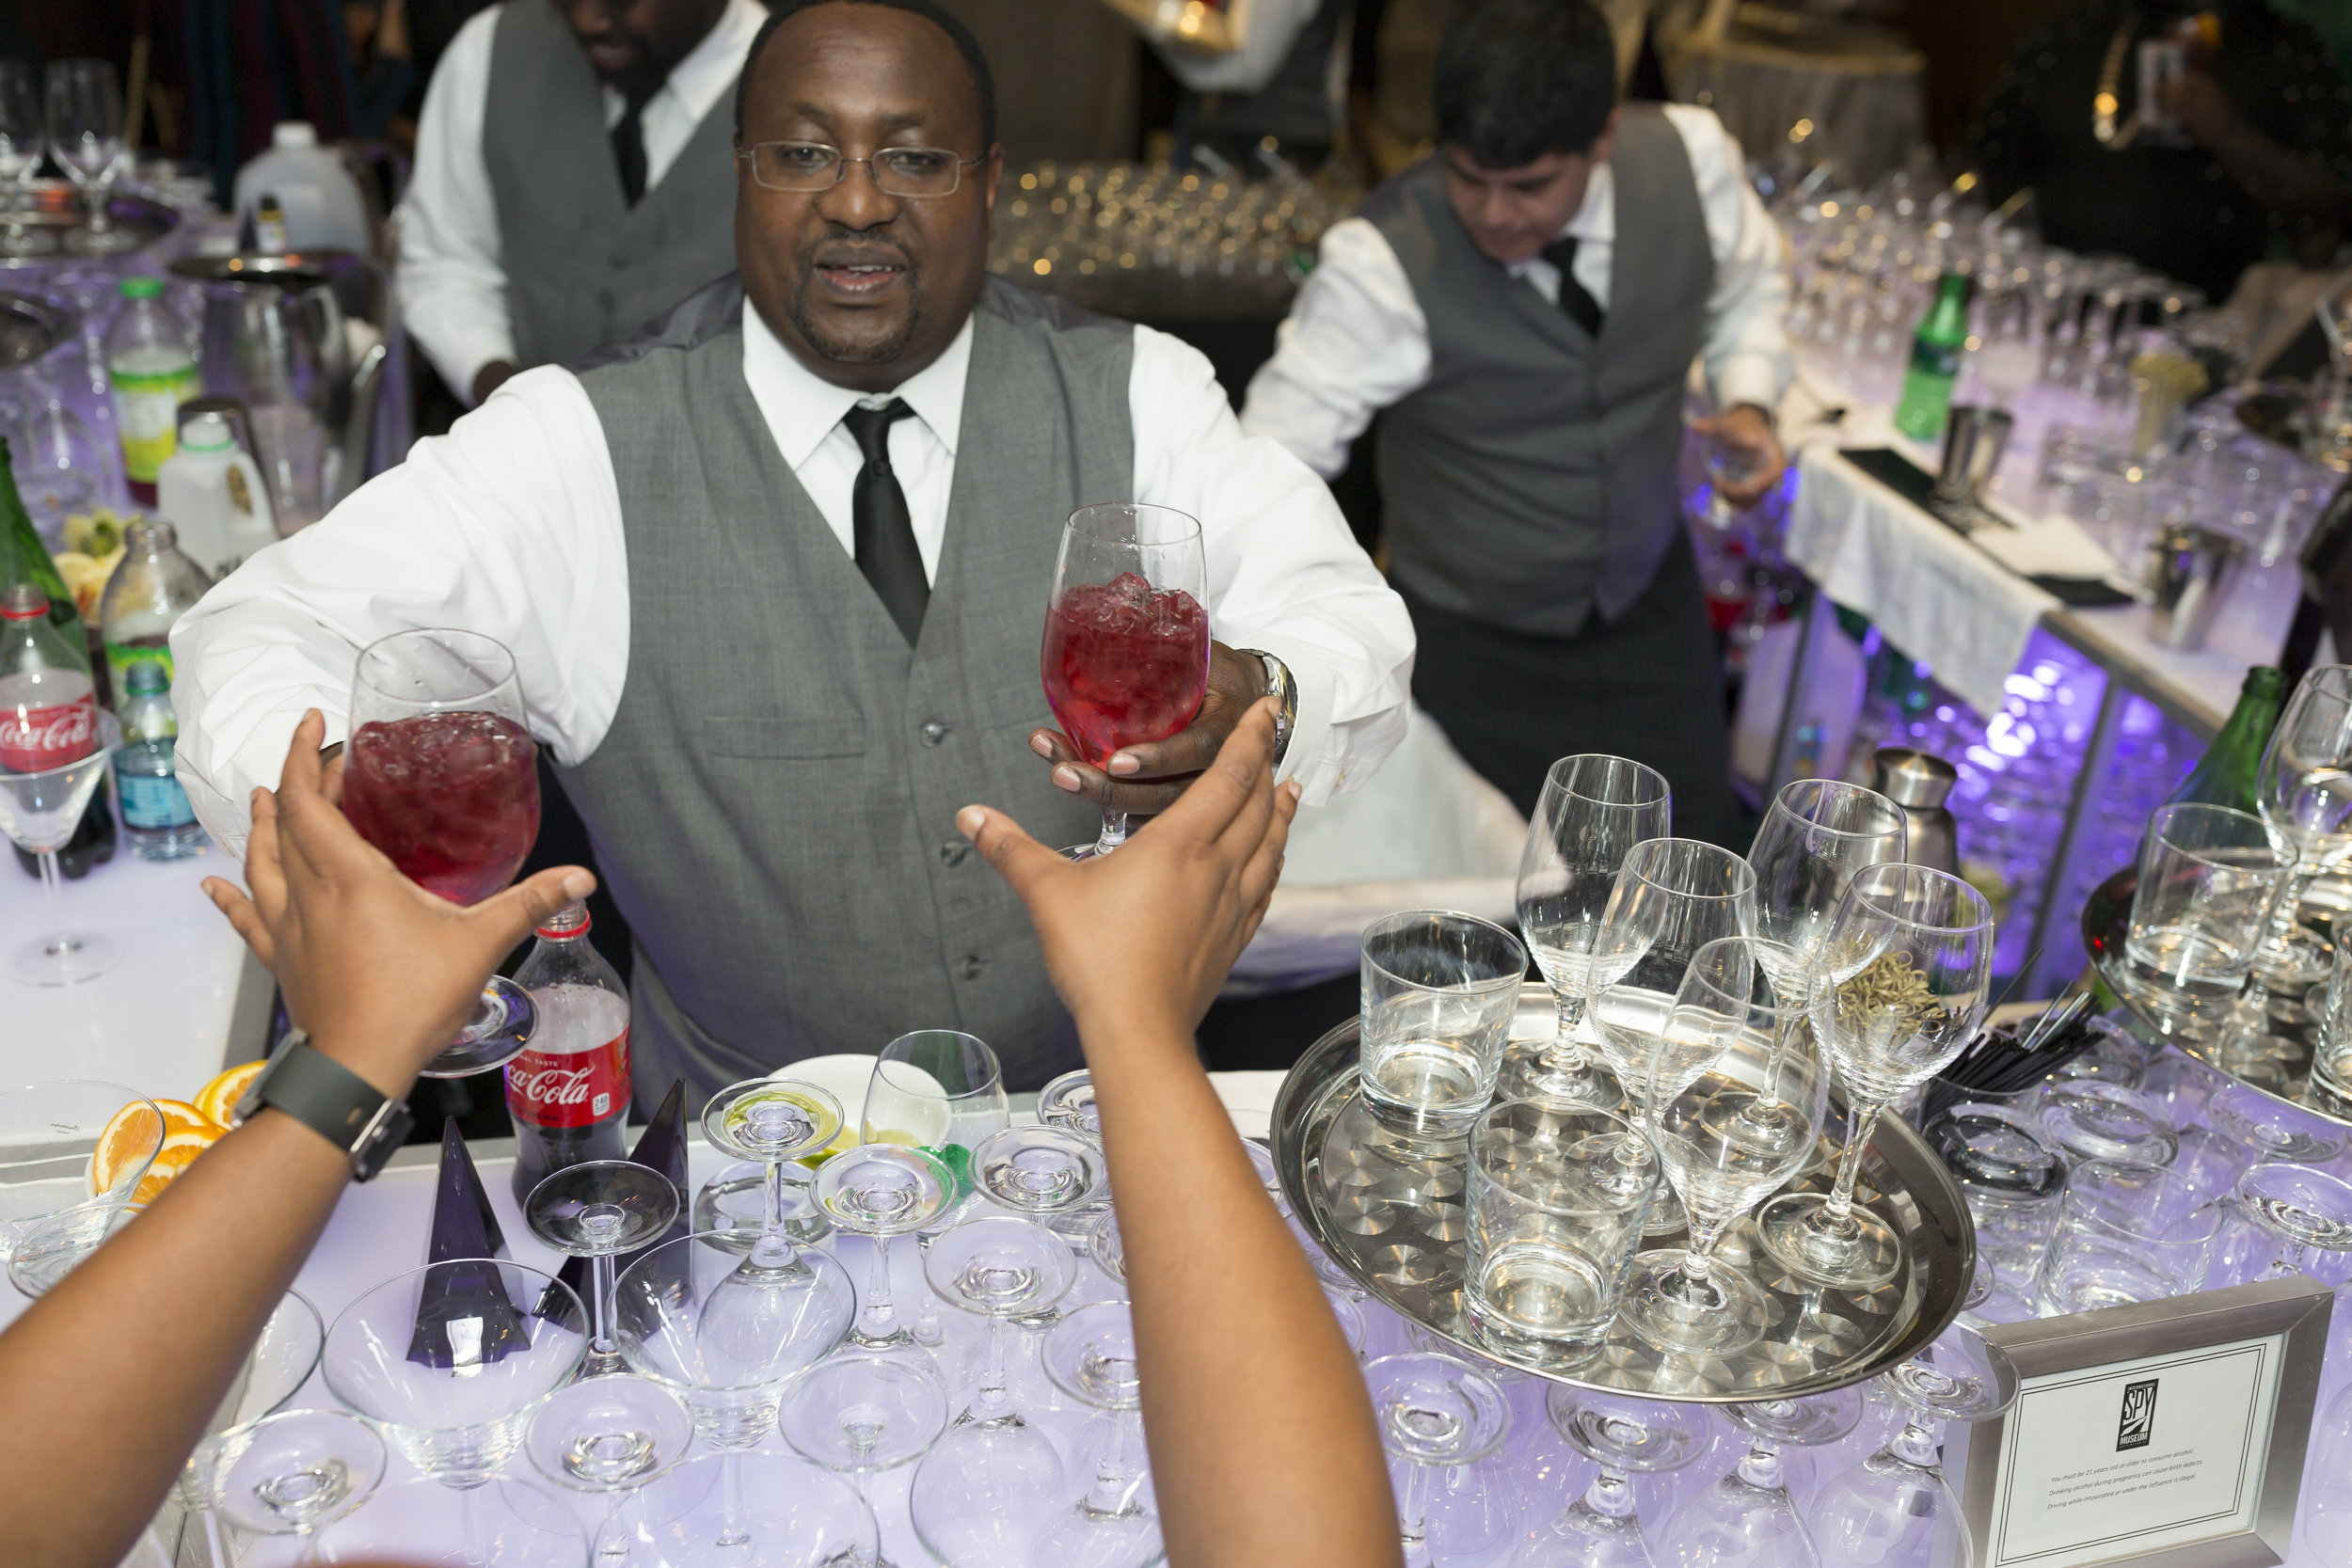 bartender-andrea-roby-events